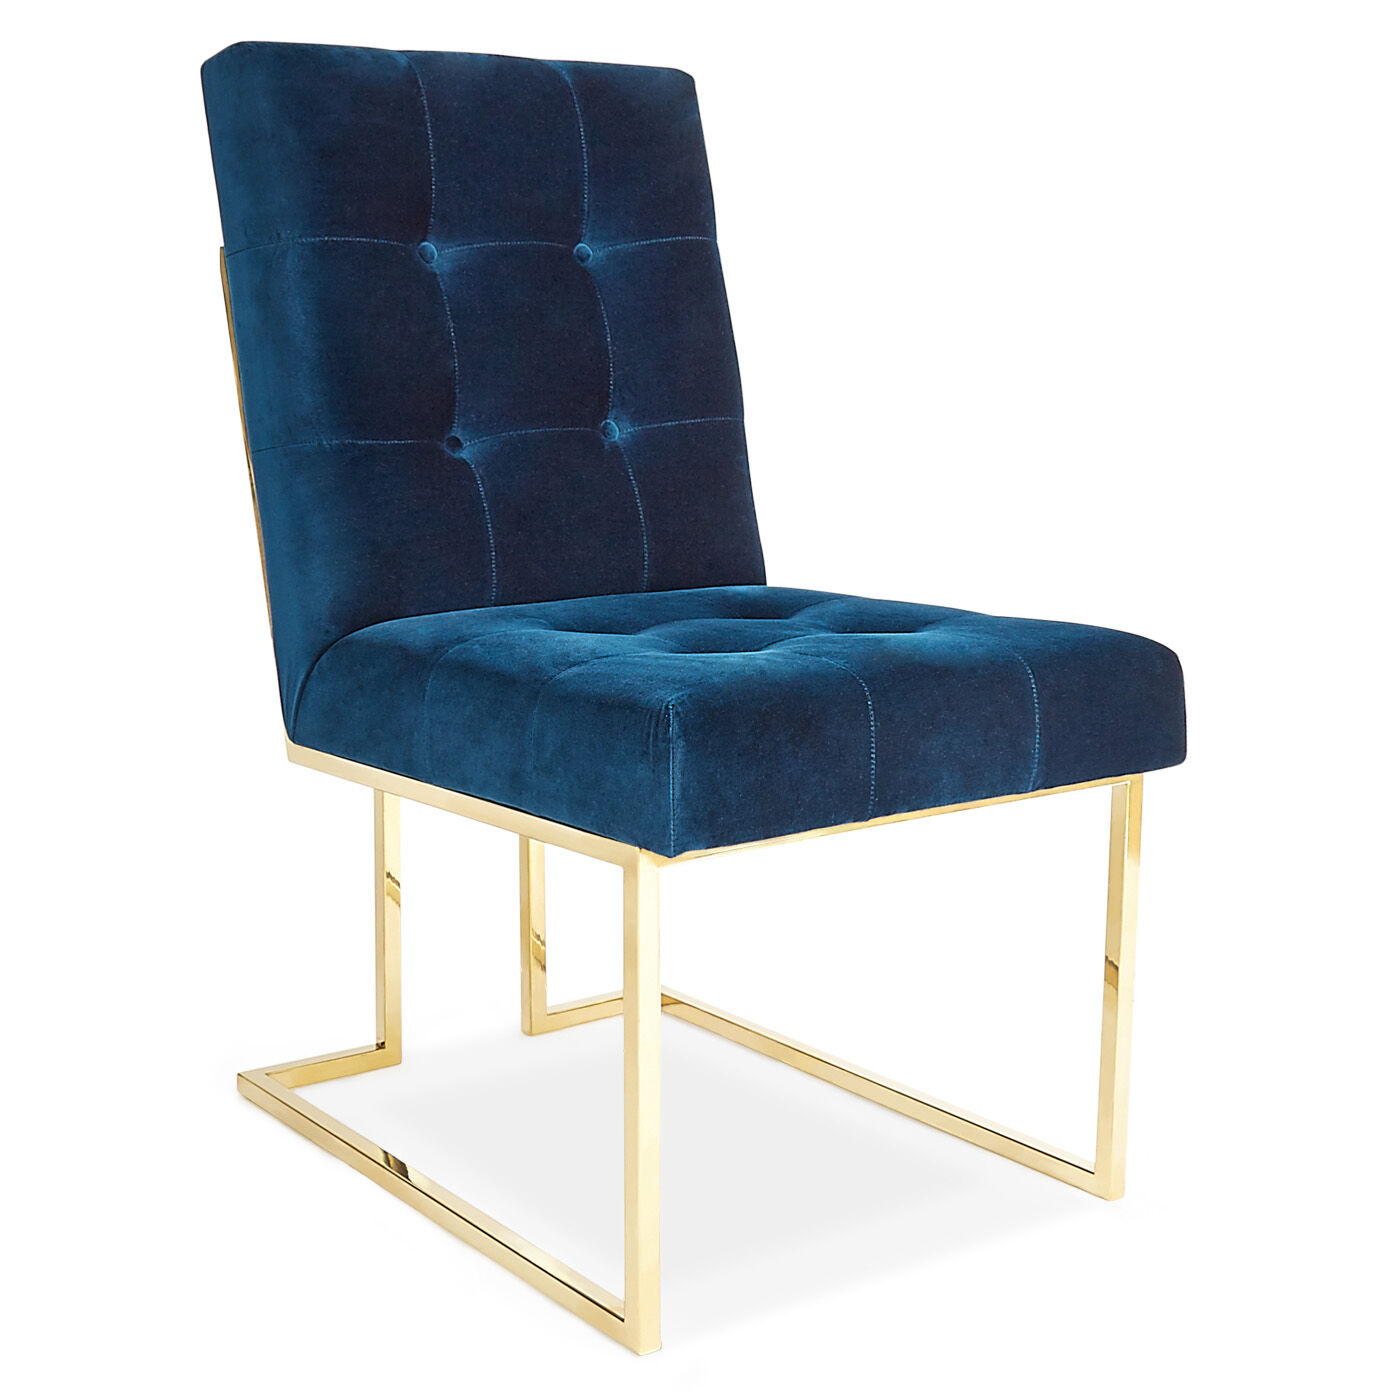 chairs goldfinger dining chair